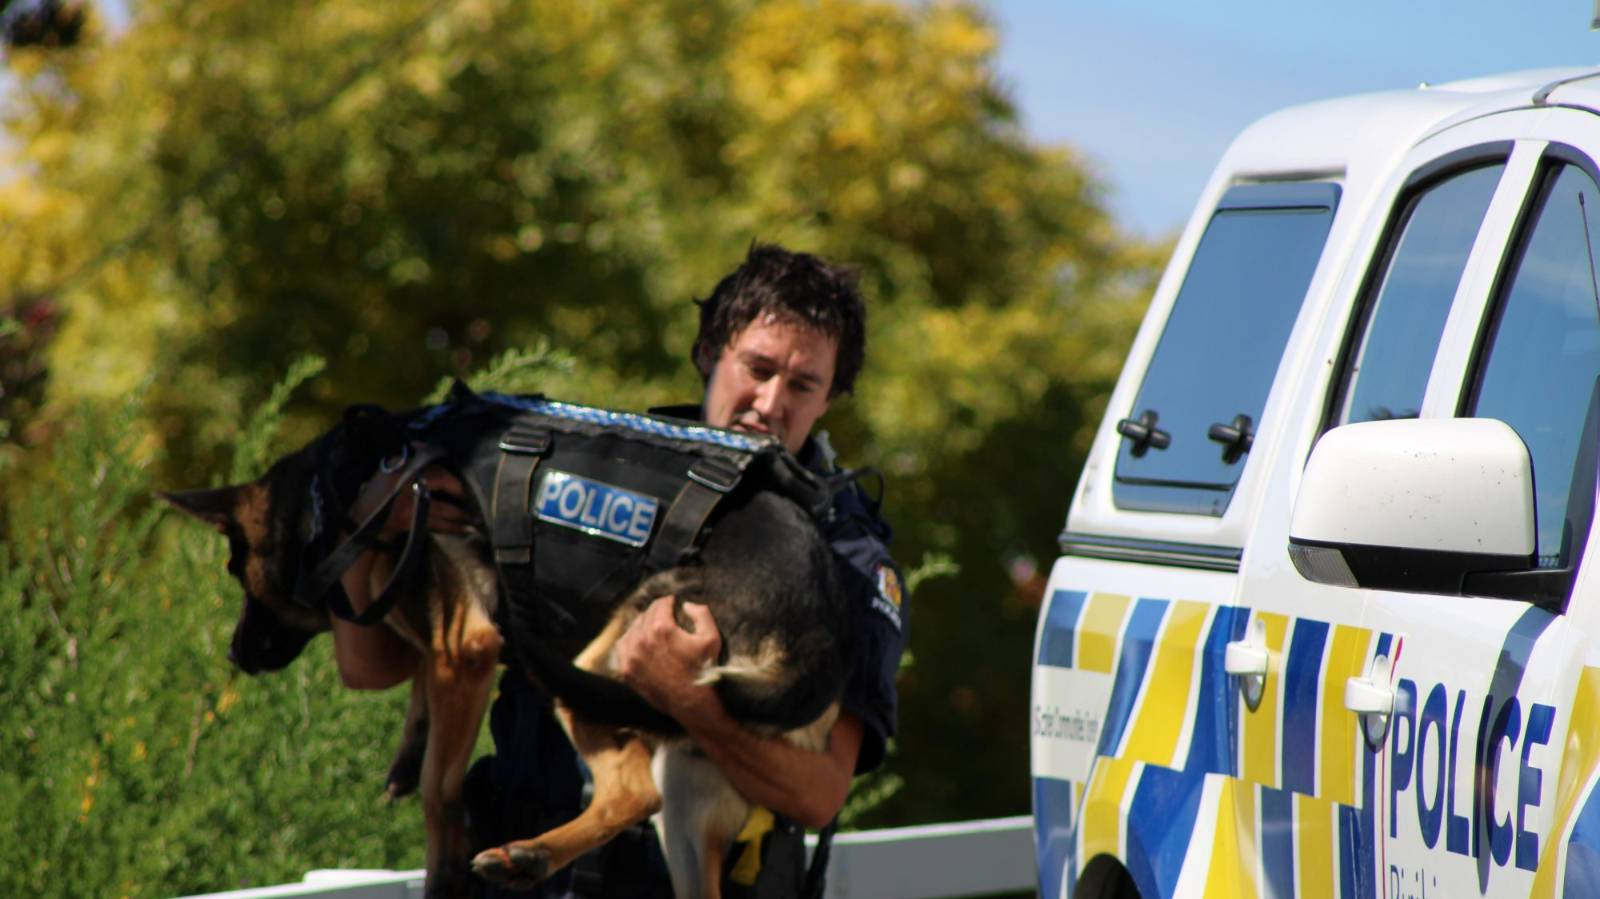 Police dogs carried to safety after fleeing driver hits police car